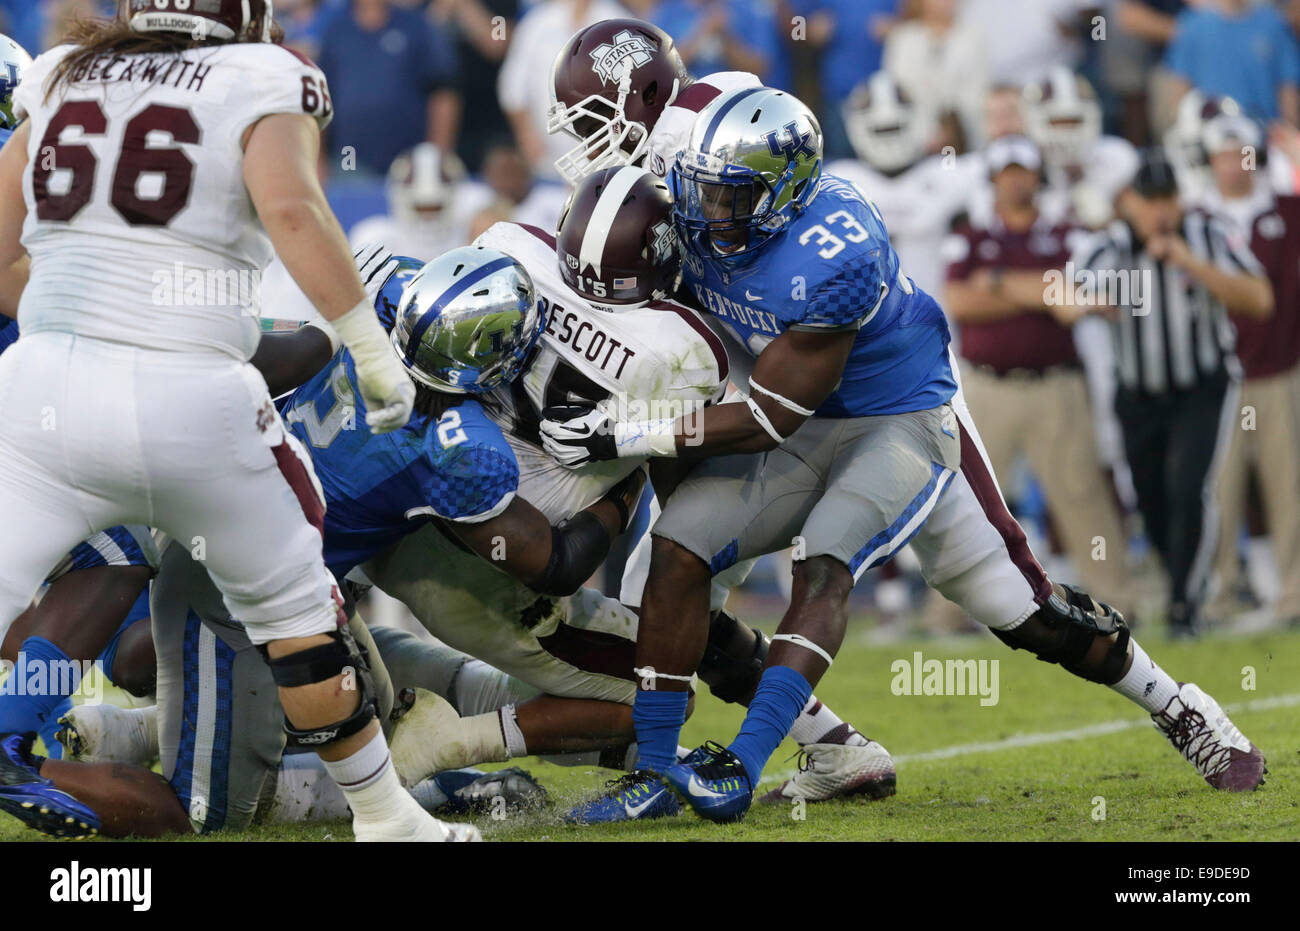 Lexington, Ky, US. 25th Oct, 2014. Kentucky's Alvin Dupree (2) and Kentucky's Ryan Flannigan stopped Mississippi - Stock Image